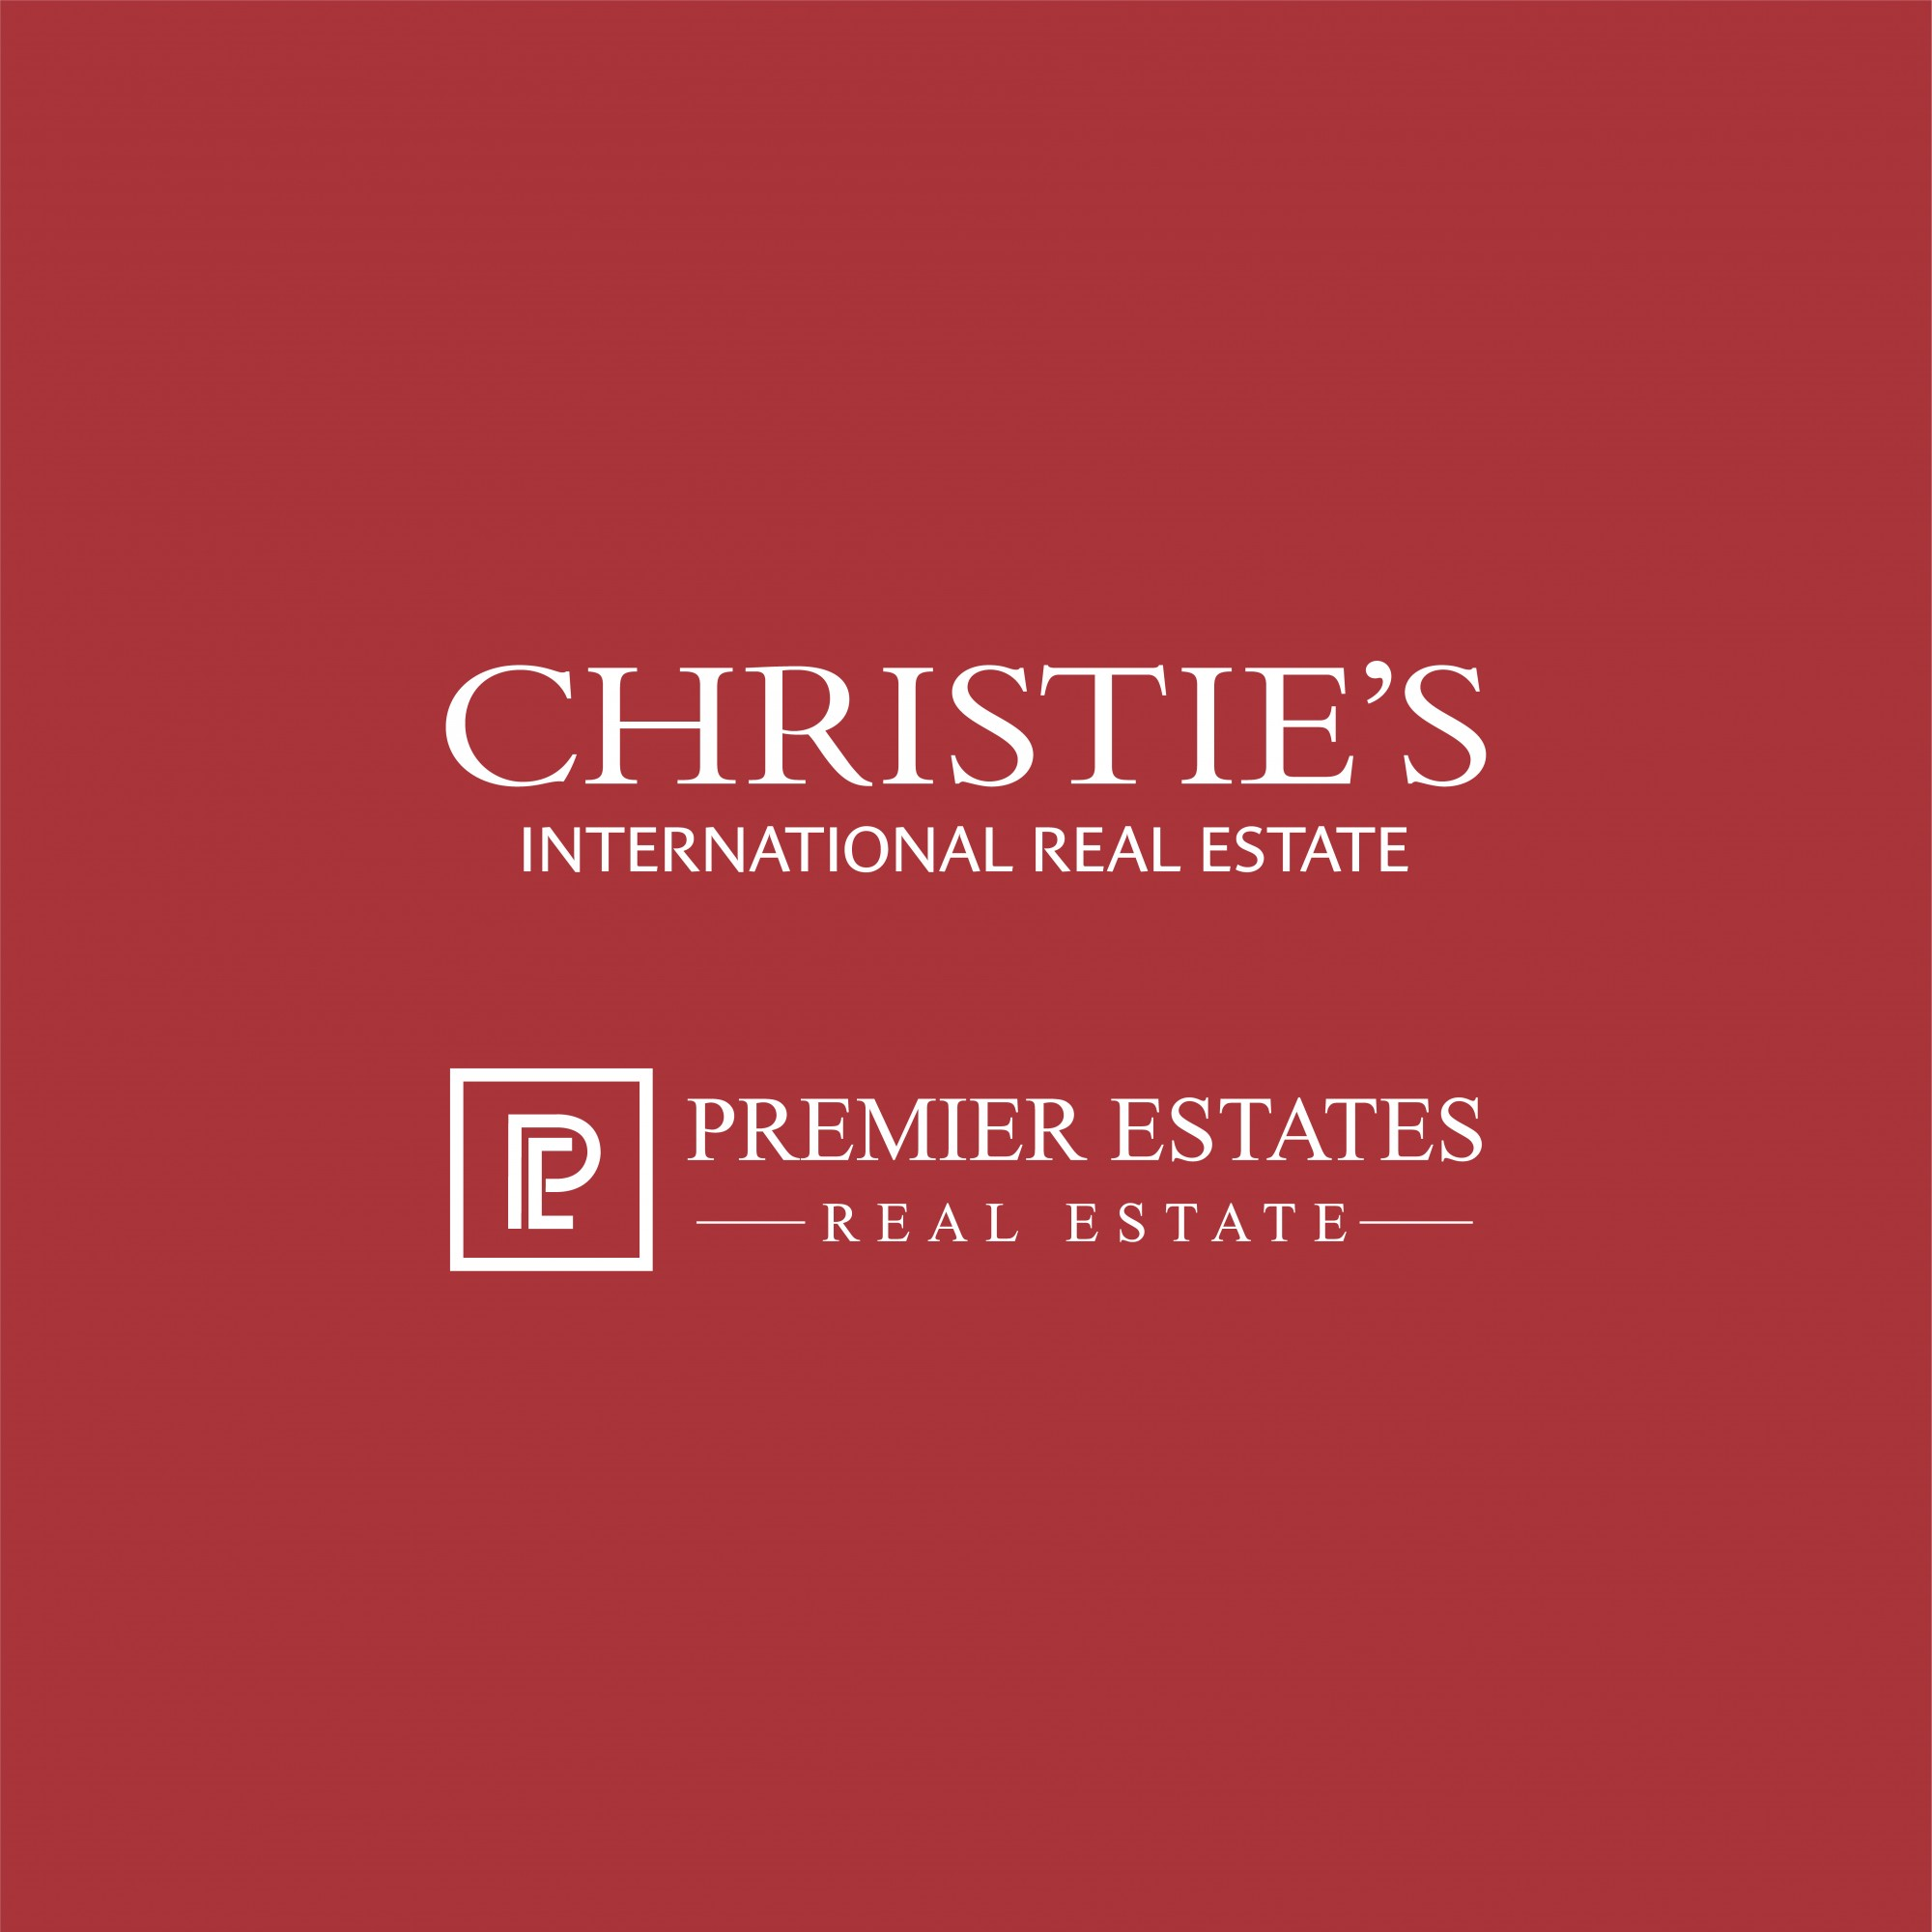 Premier Estates Real Estates Brokers LLC